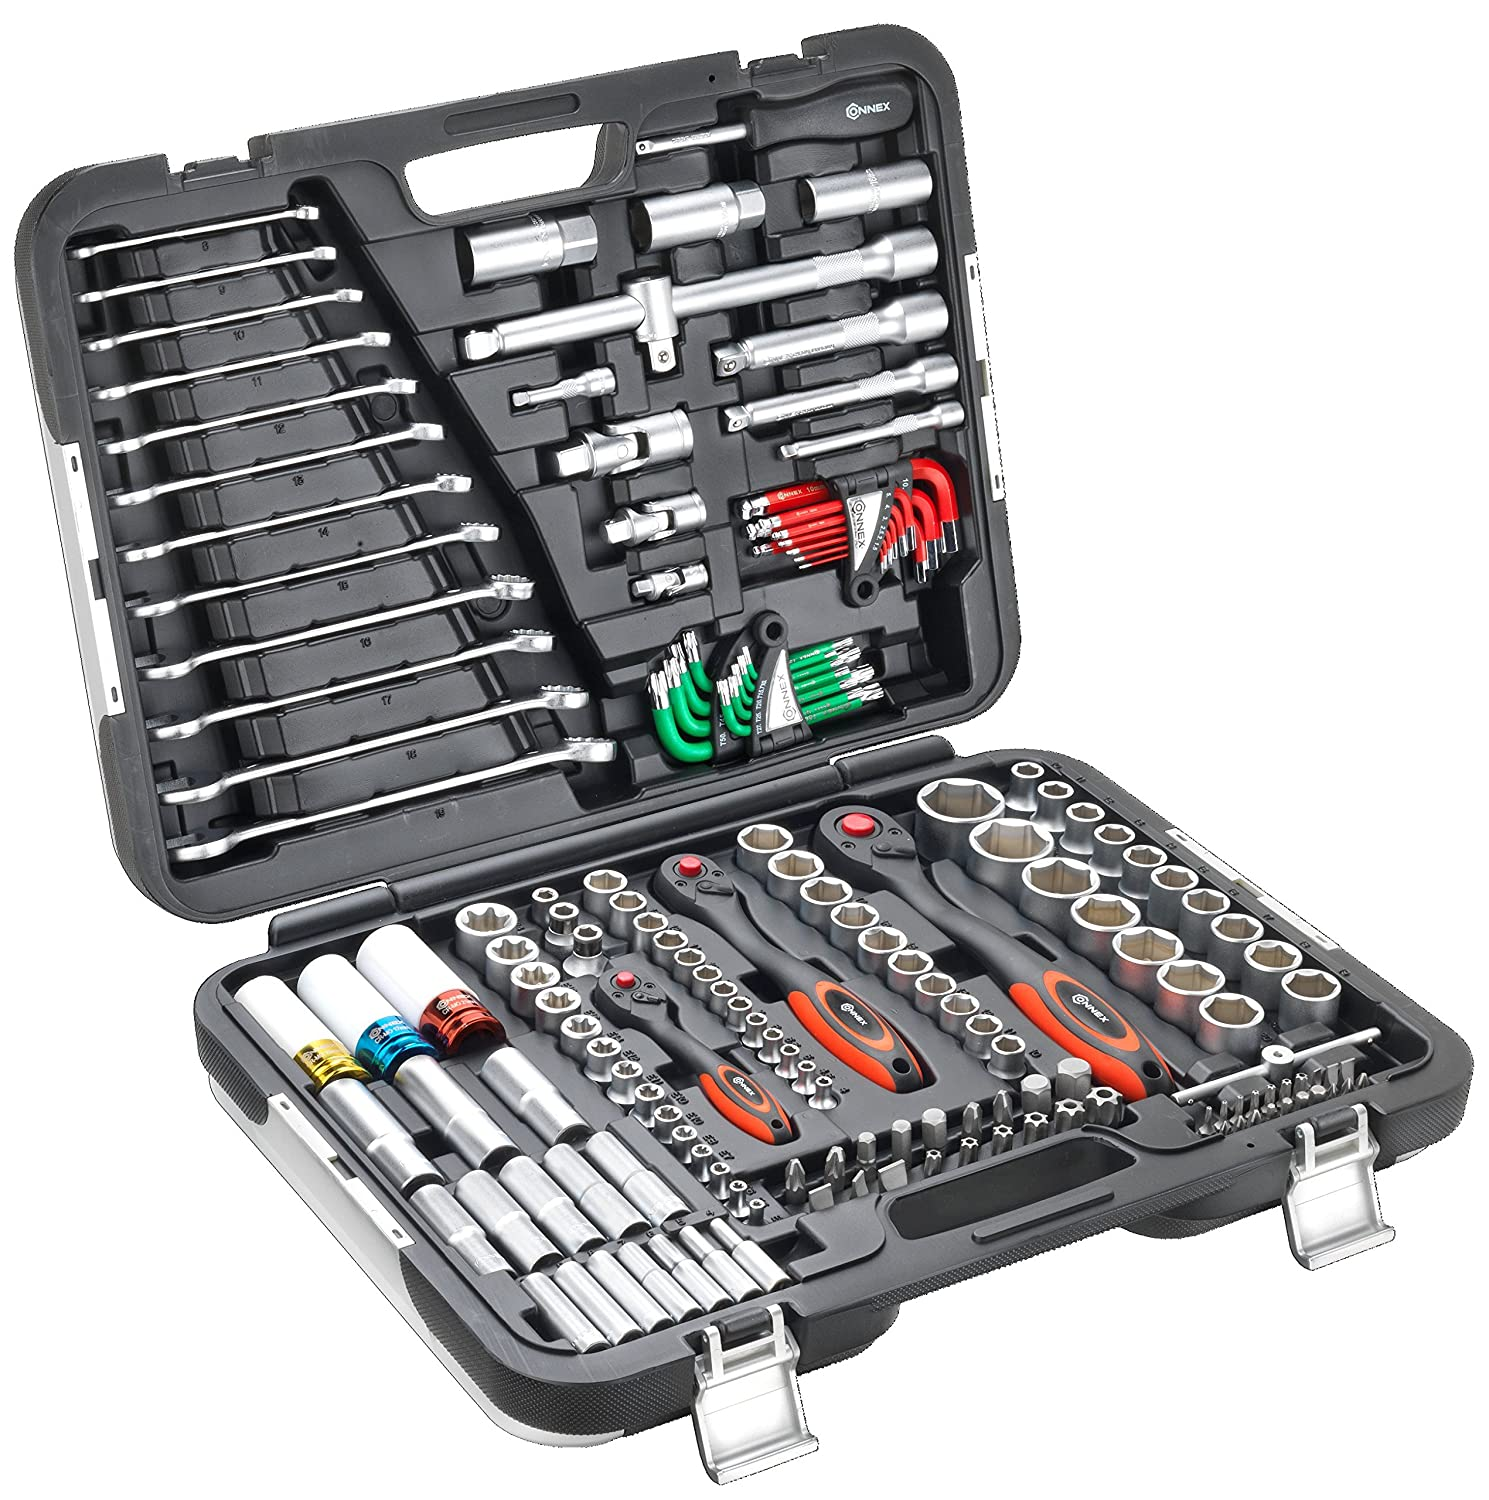 CONNEX COXBOH600160 Premium Tool Case/Socket Set for Motor Vehicles (160-Piece) Conmetall GmbH uk home improvement COZTG